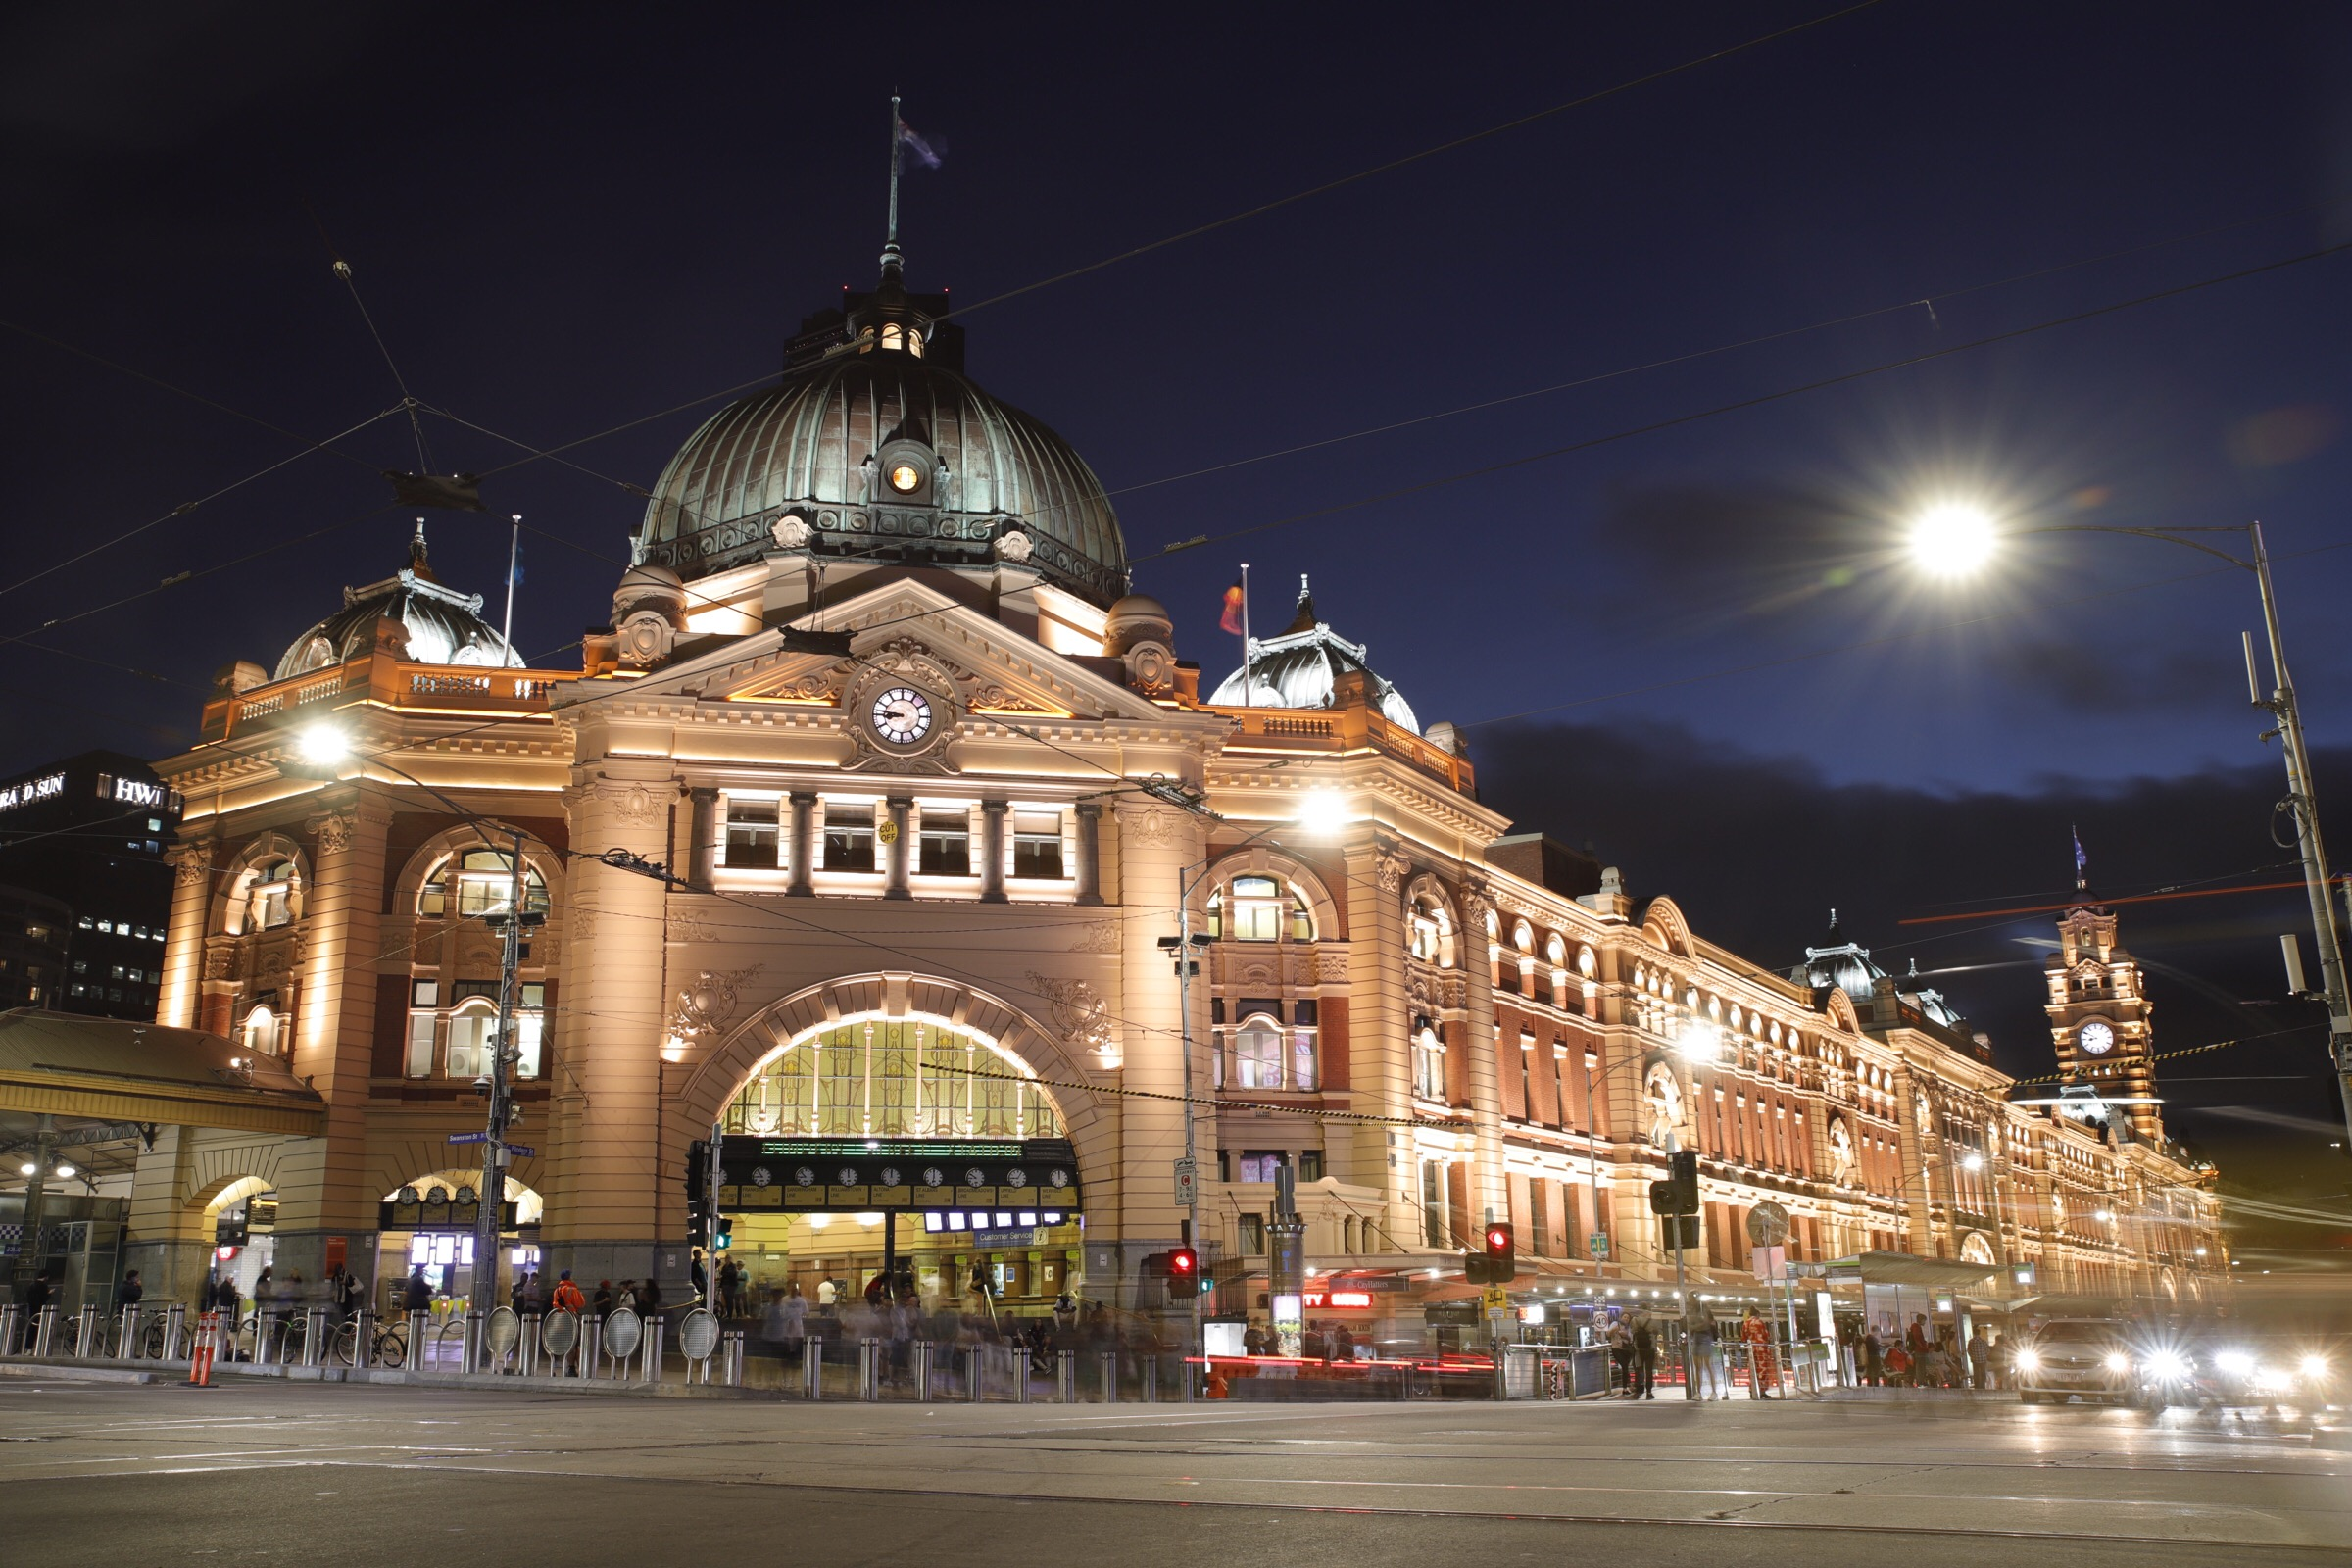 Melbourne's iconic Flinders Street Station at night.